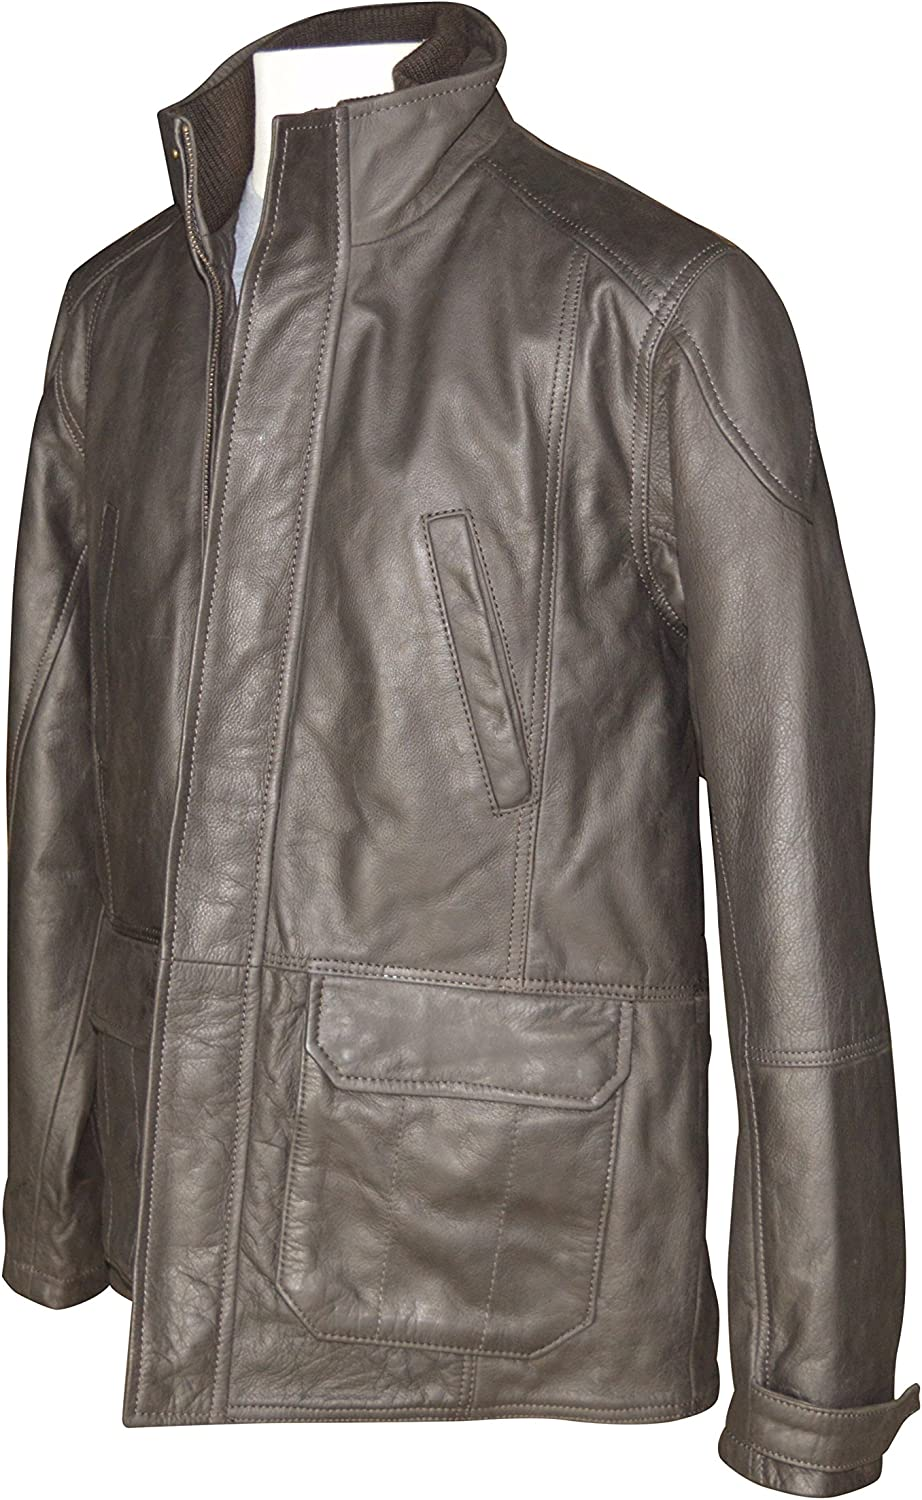 Austin Reed Brown Luxury Leather Jacket Large Amazon Co Uk Clothing